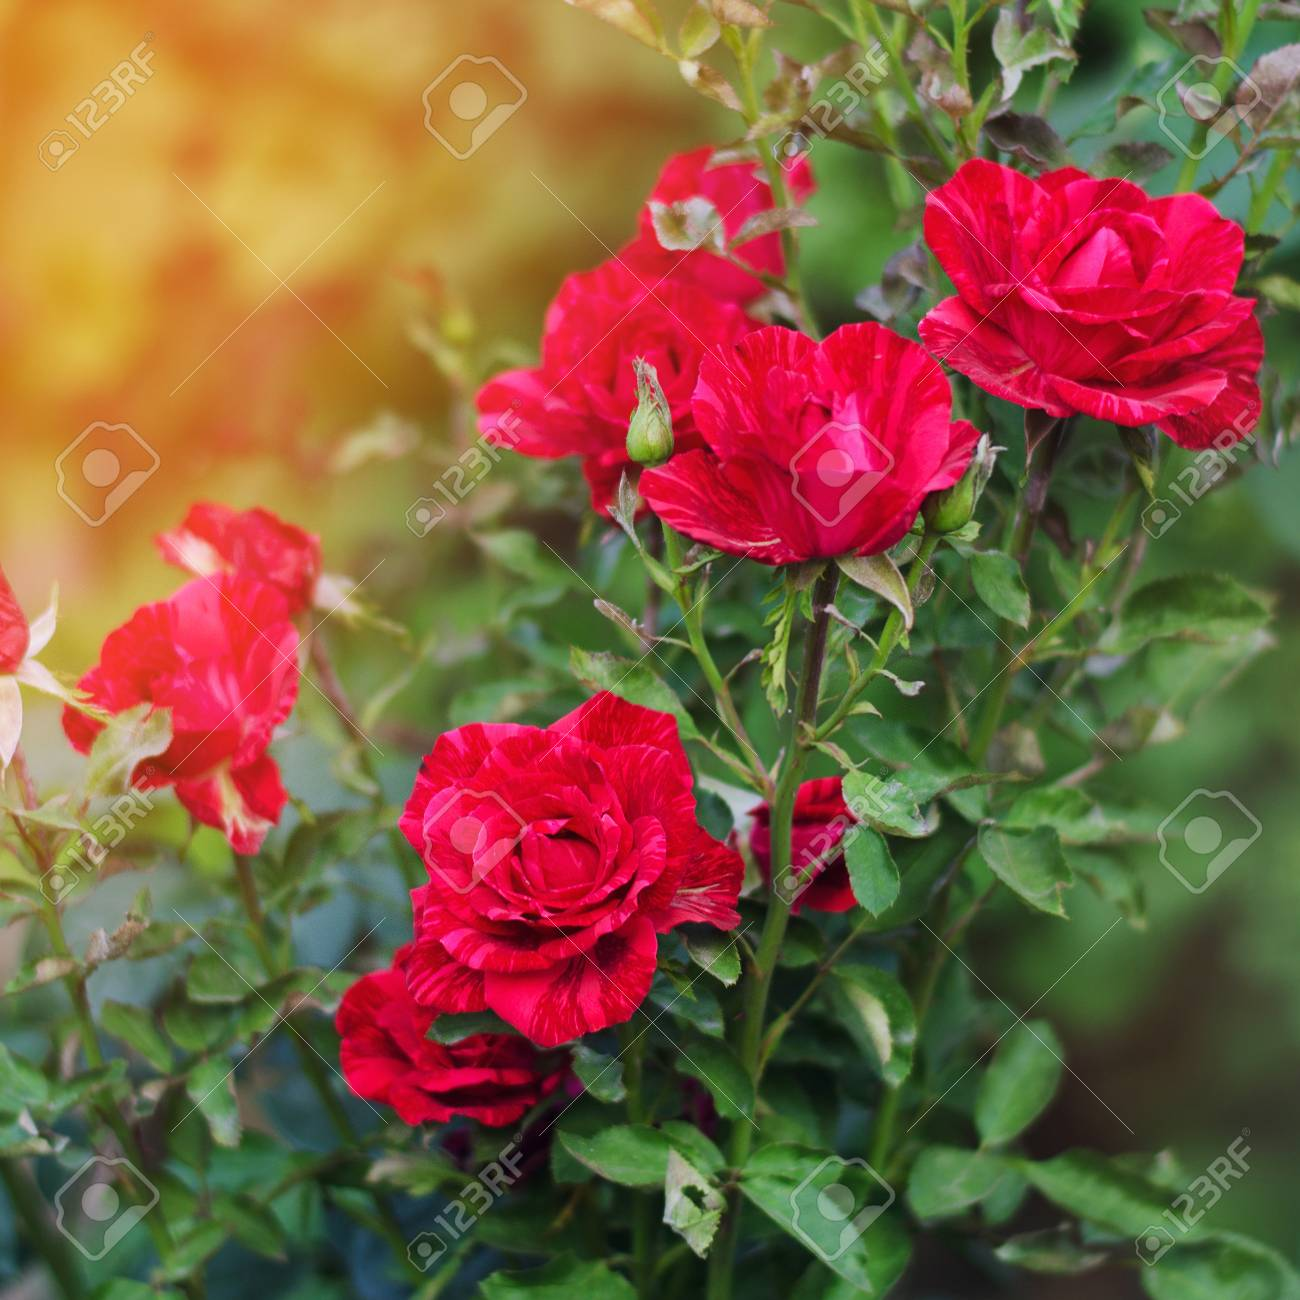 Beautiful Red Roses In The Garden Nature Wallpaper Flowers 1300x1300